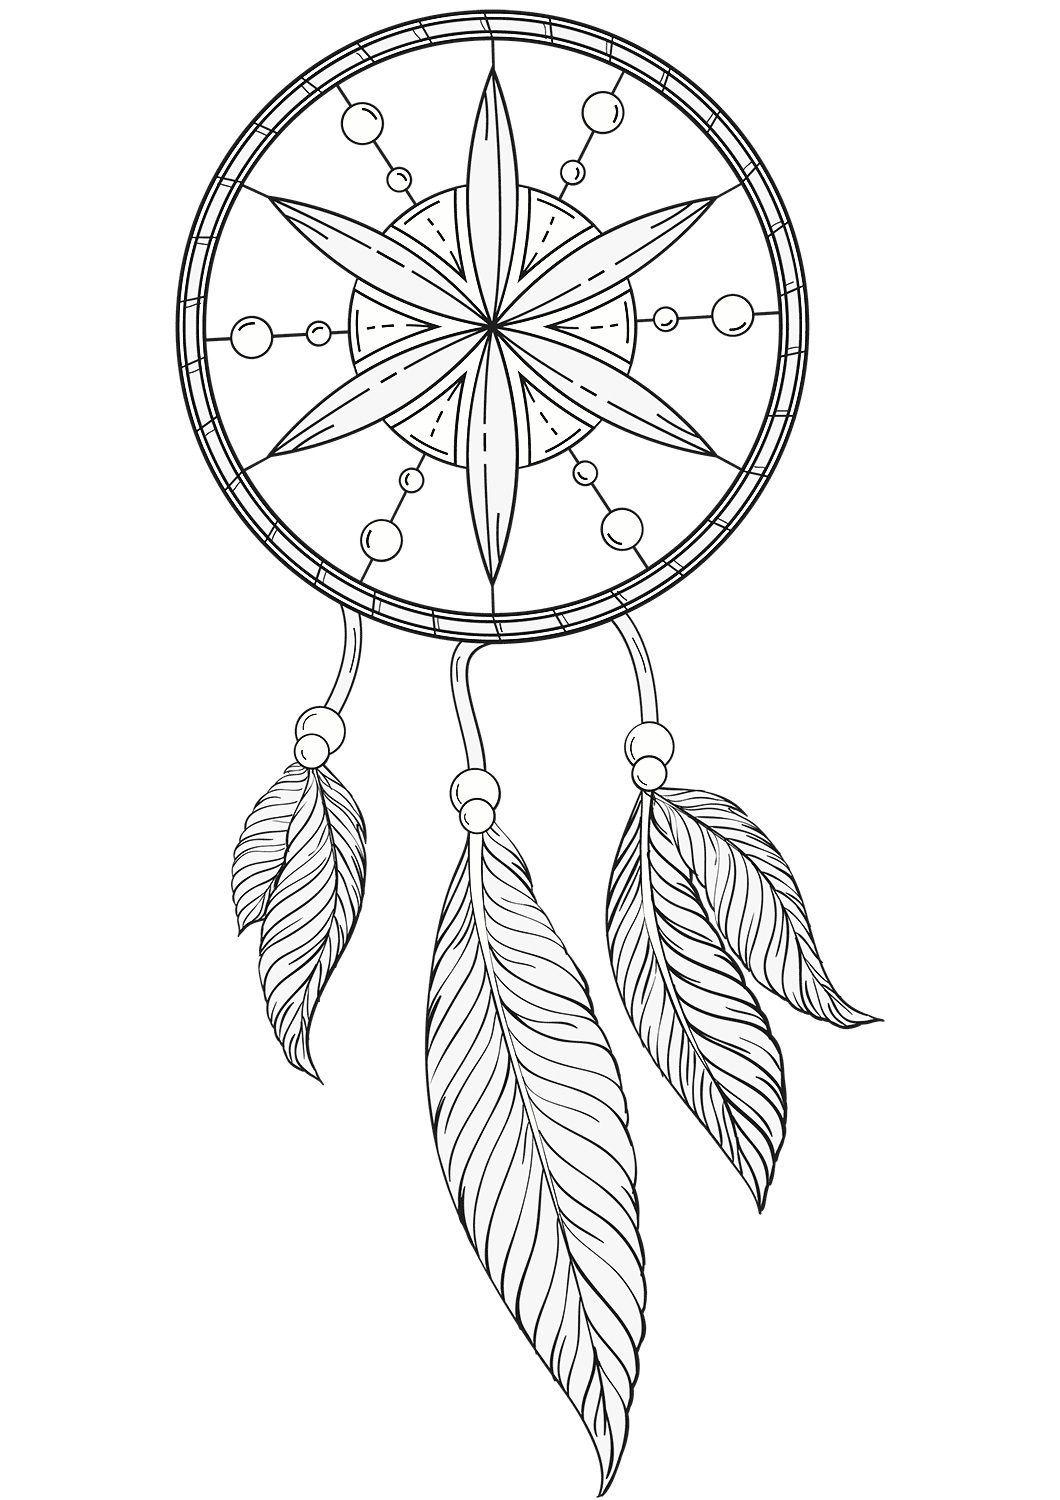 Dream Catcher Coloring Pages - Best Coloring Pages For Kids